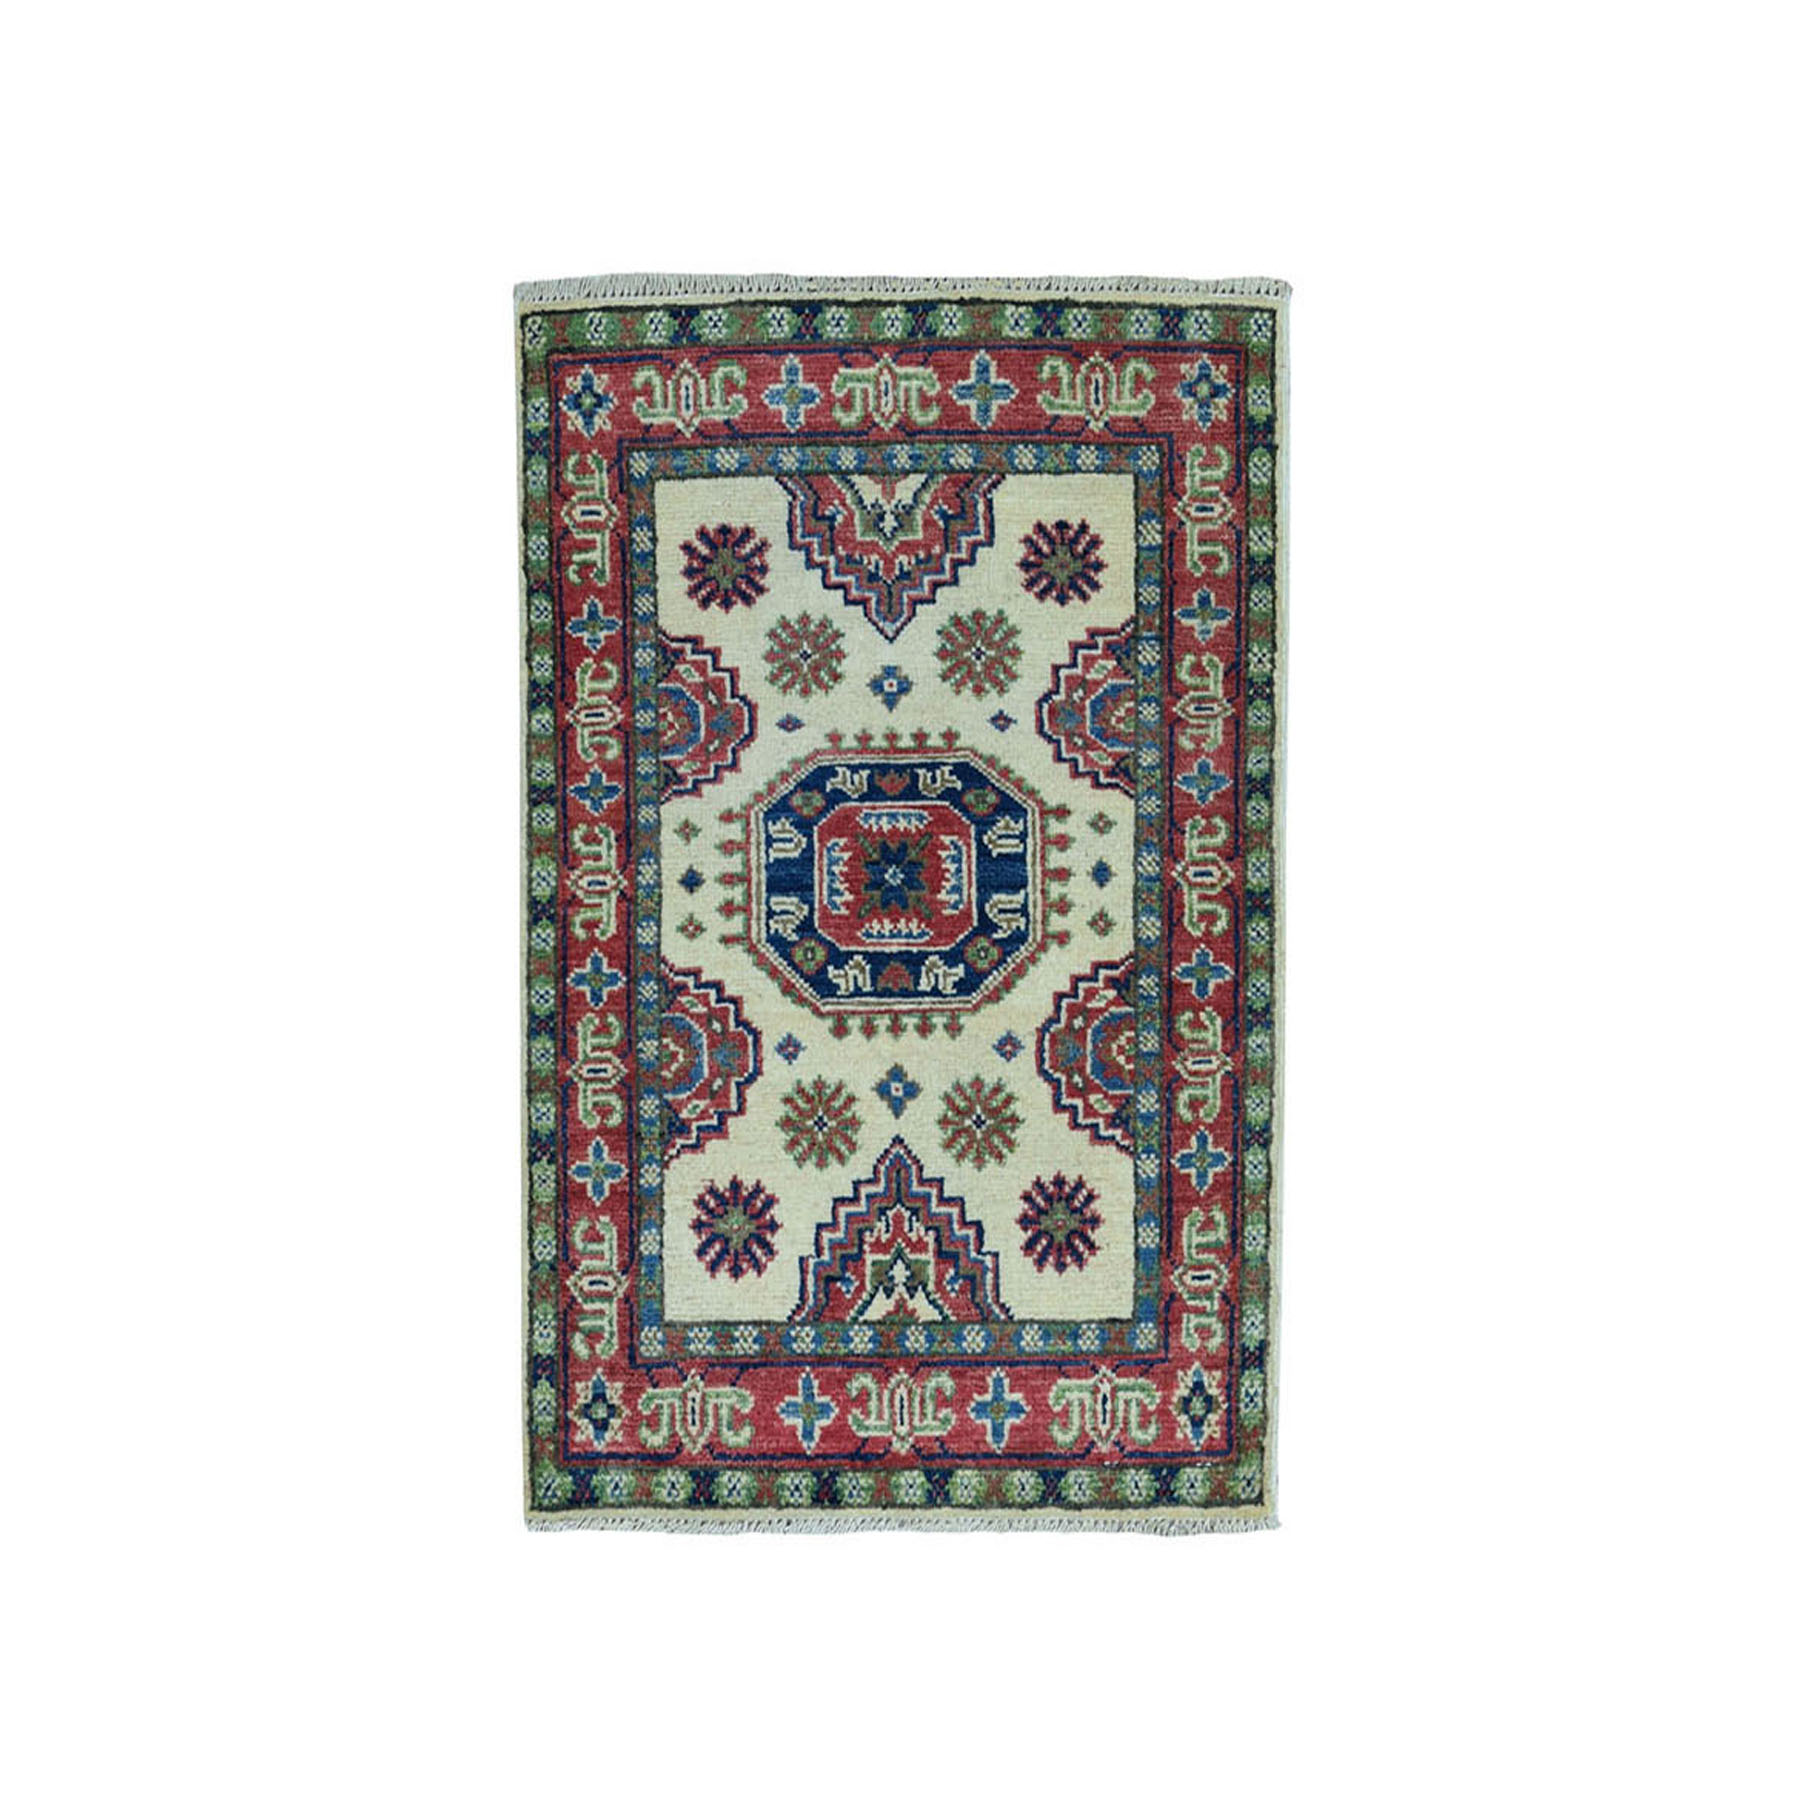 "2'x2'10"" Ivory Geometric Design Kazak Pure Wool Hand-Knotted Oriental Rug"